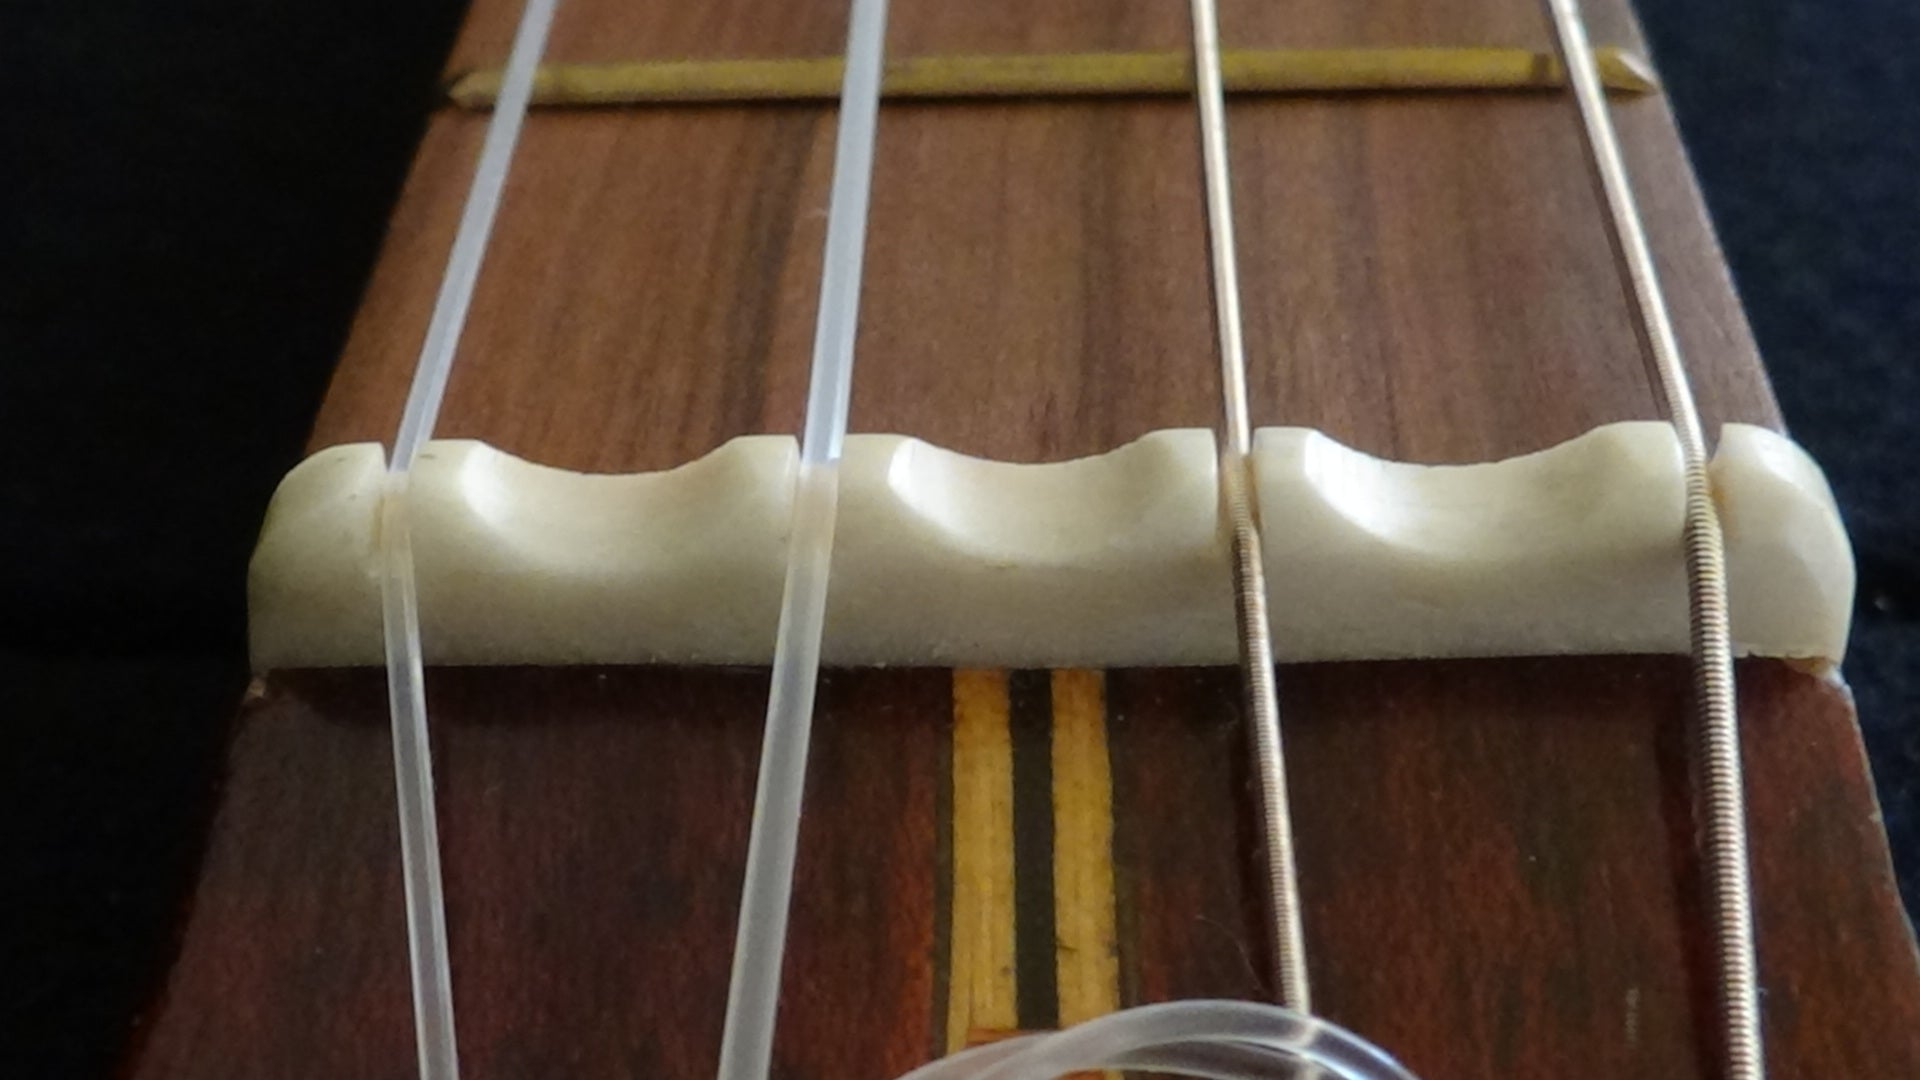 Bandola Llanera Cedar and Caoba Wood Instrument